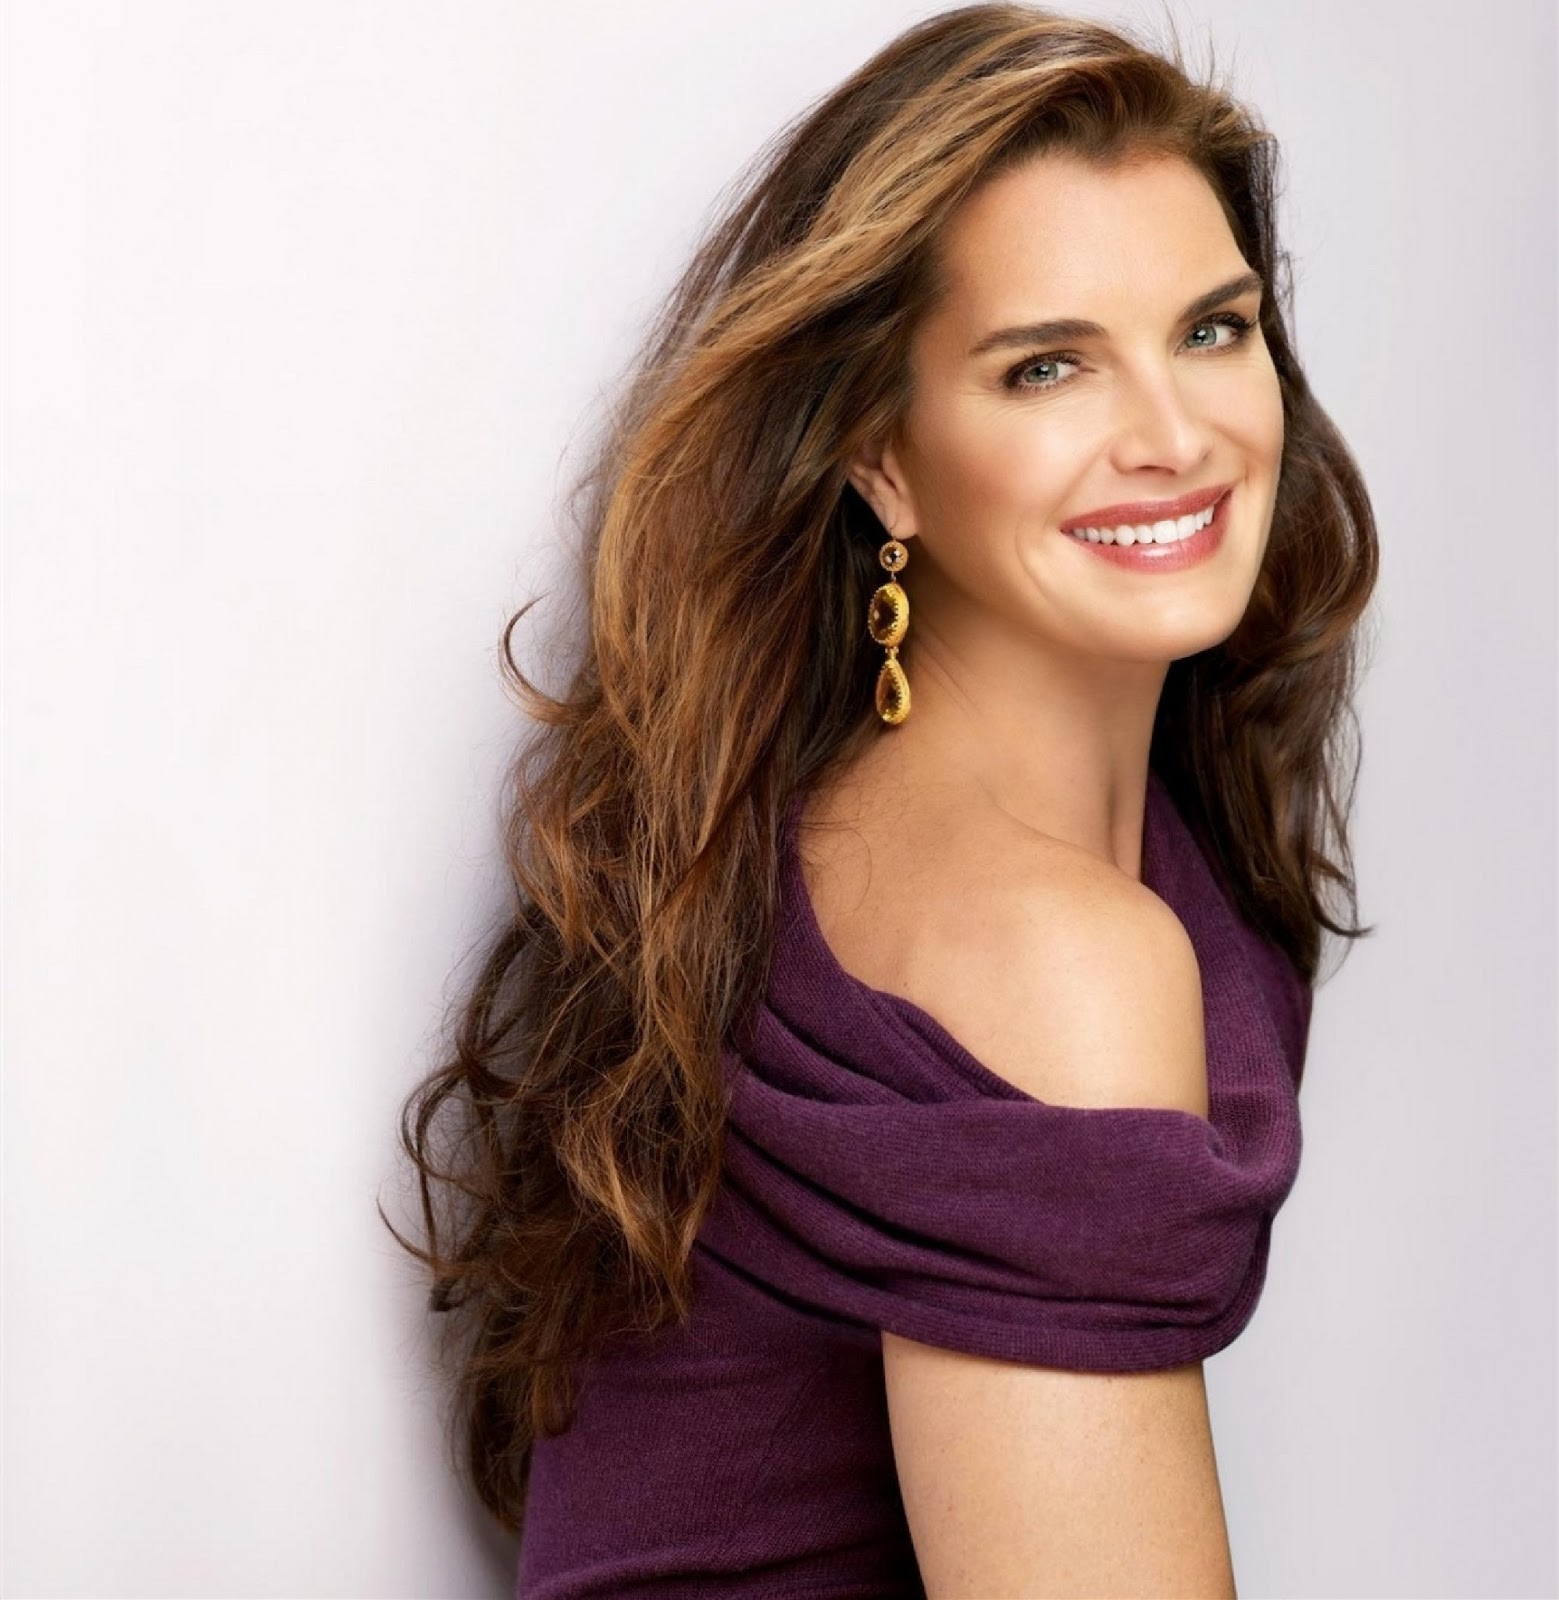 Hollywood Actress Wallpaper: Brooke Shields Wallpapers